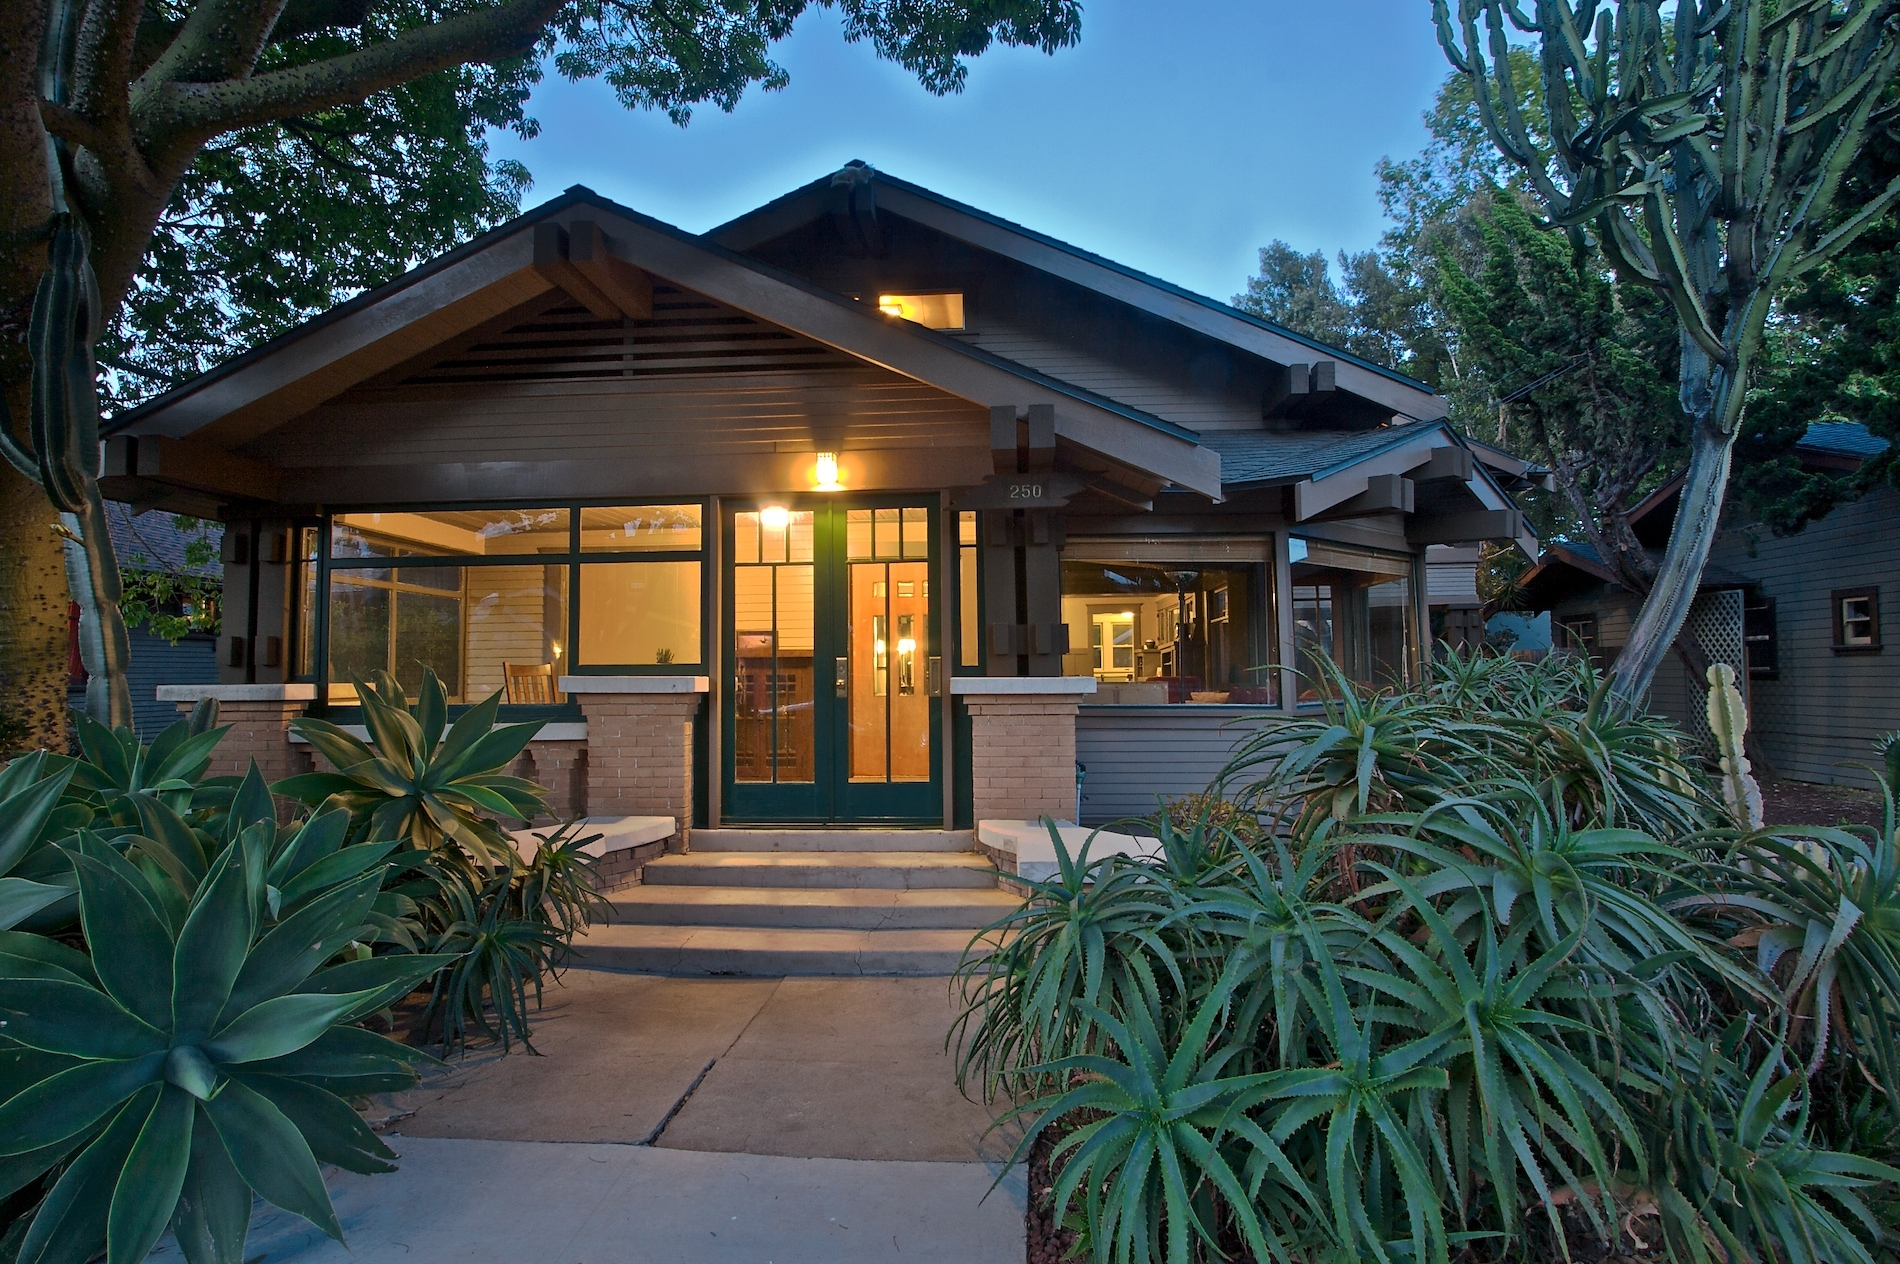 California Craftsman Bungalow Style Homes